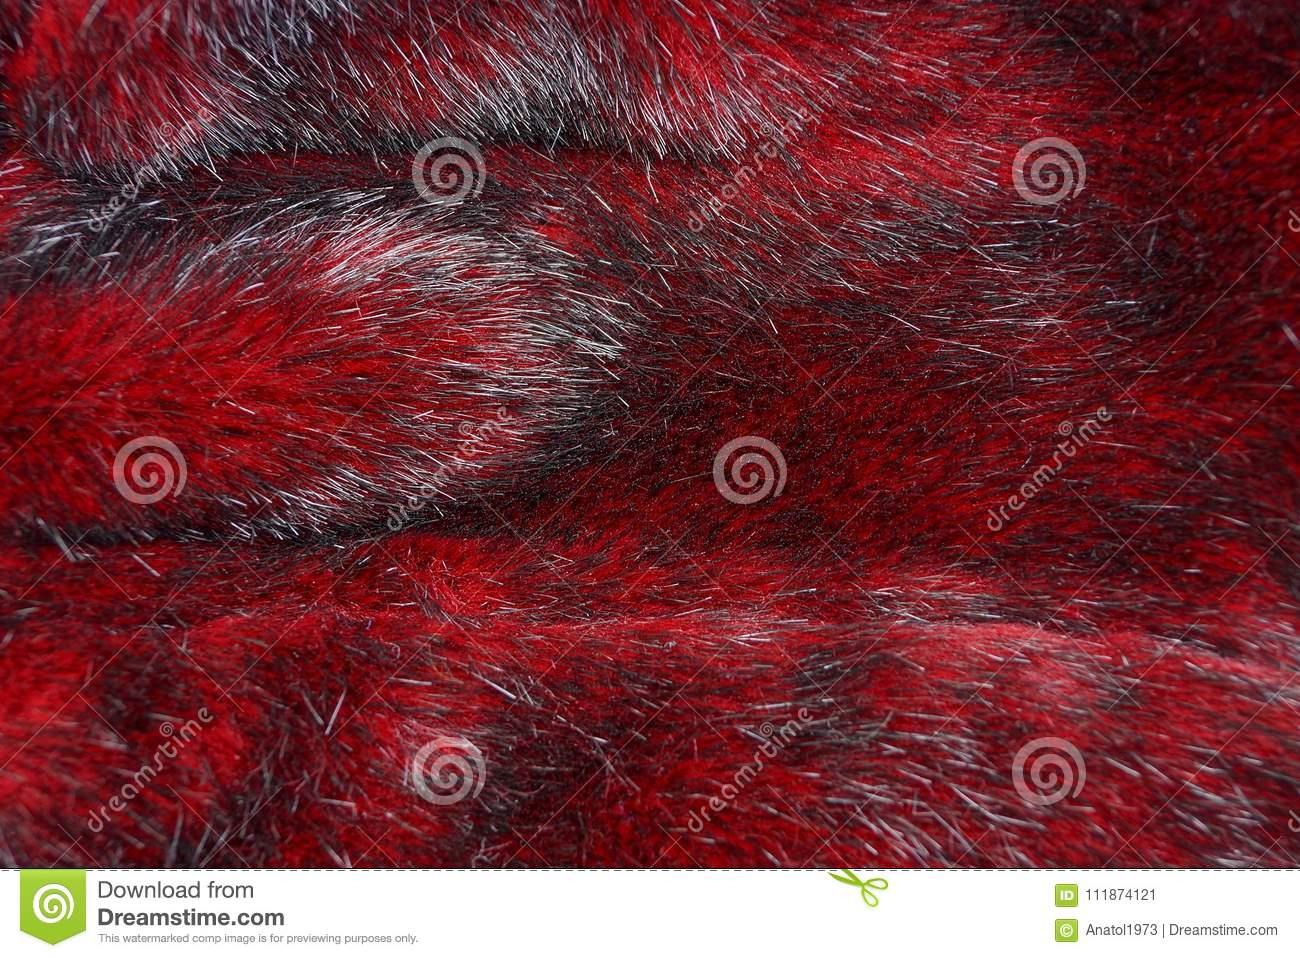 Texture of red fur on a piece of clothing